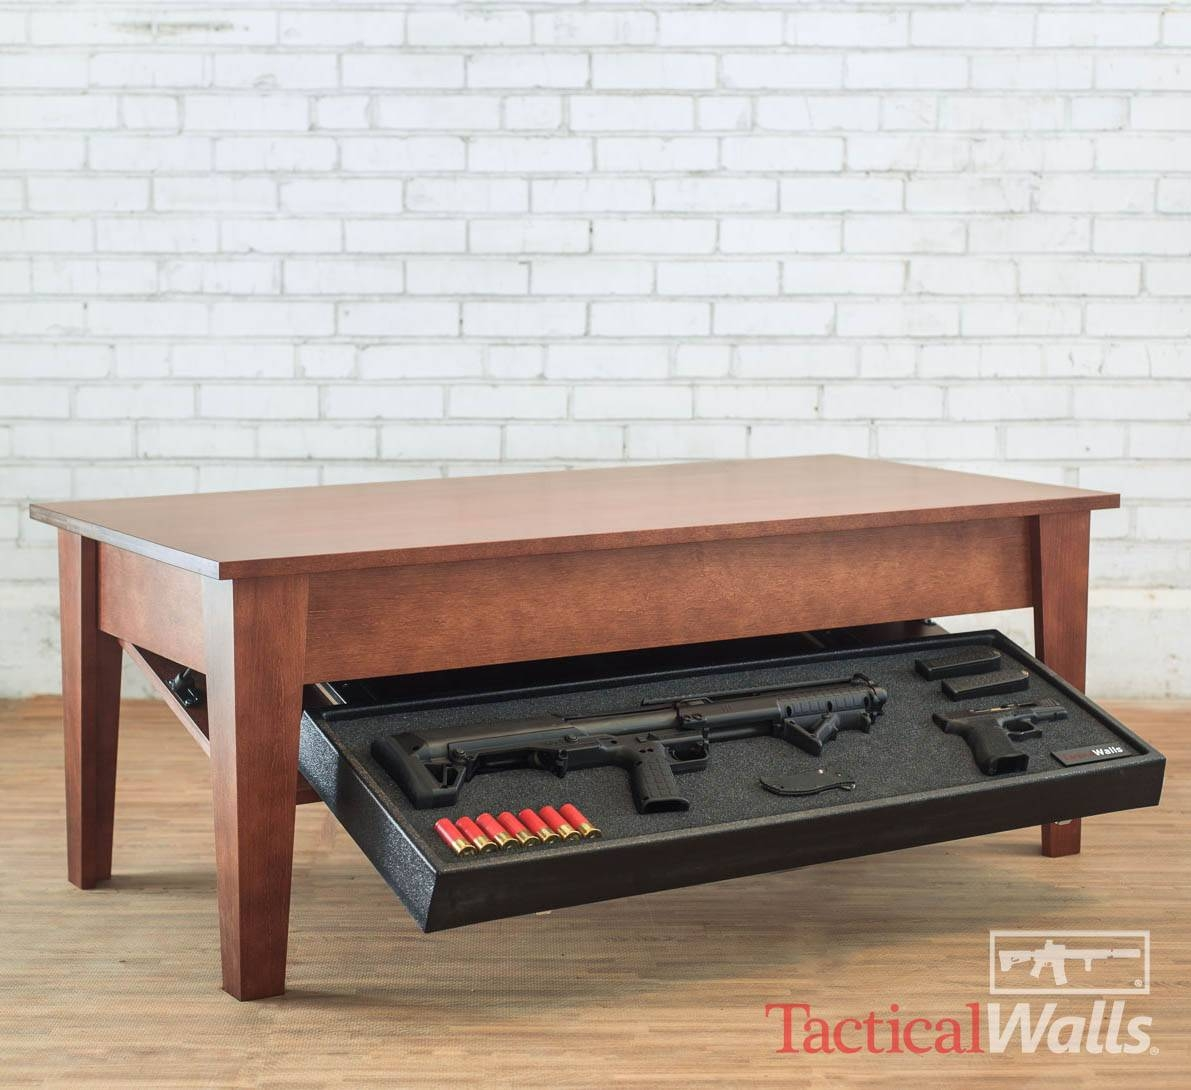 Concealment Coffee Table | Tactical Walls | Home Defense With Regard To Coffee Tables With Clock Top (View 17 of 30)